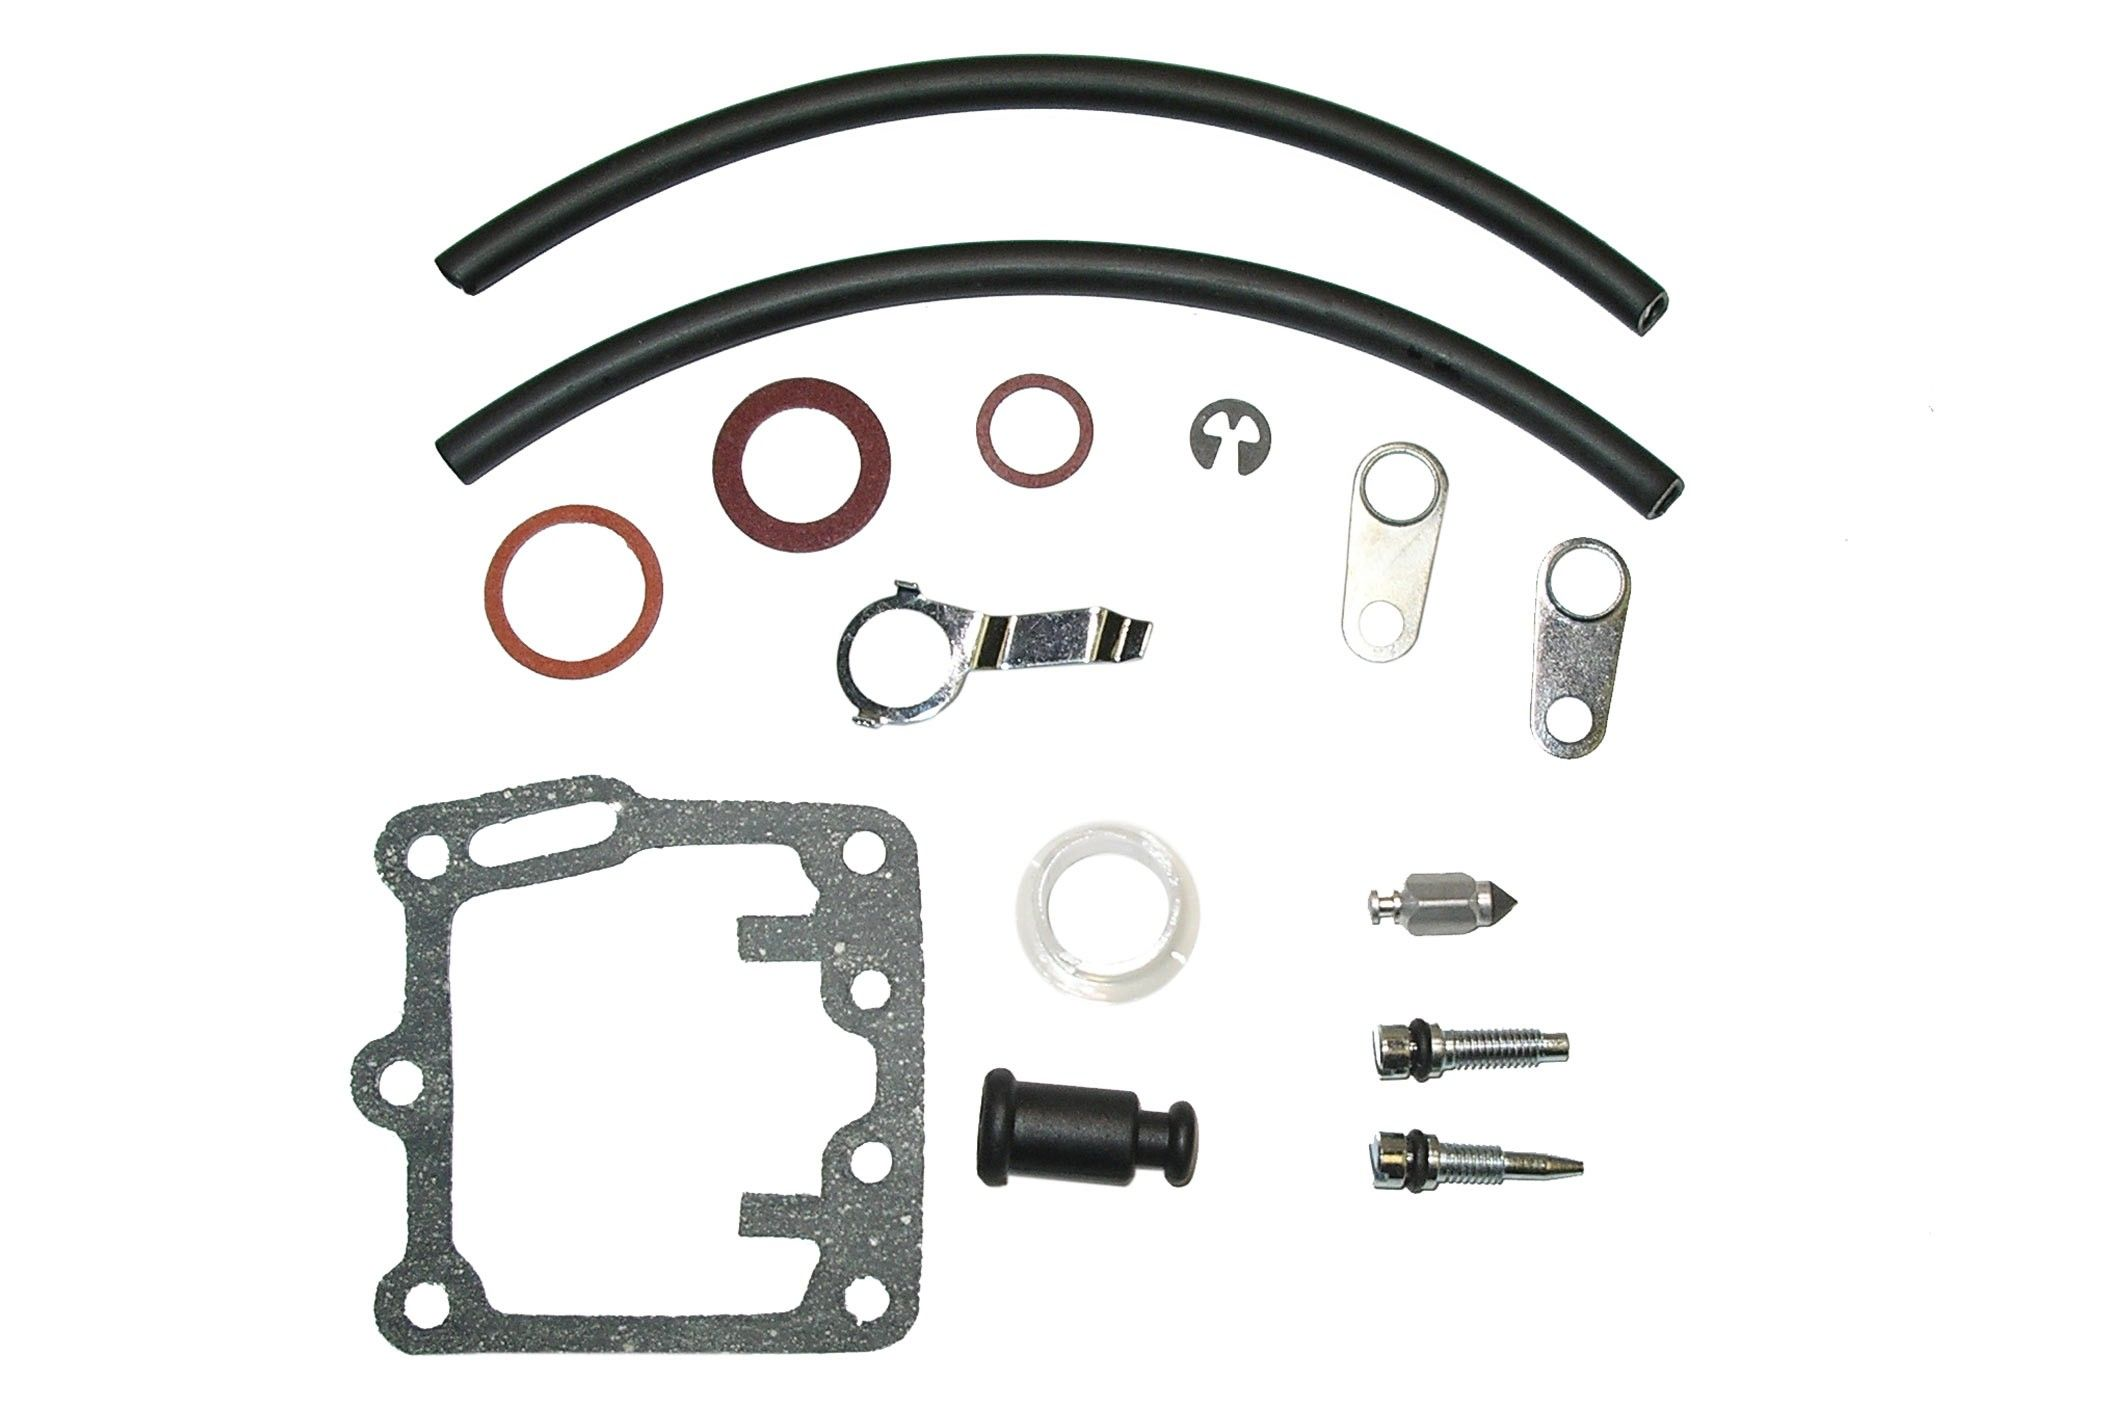 Amal MkII carburettor service kit - Classic Bike Spares